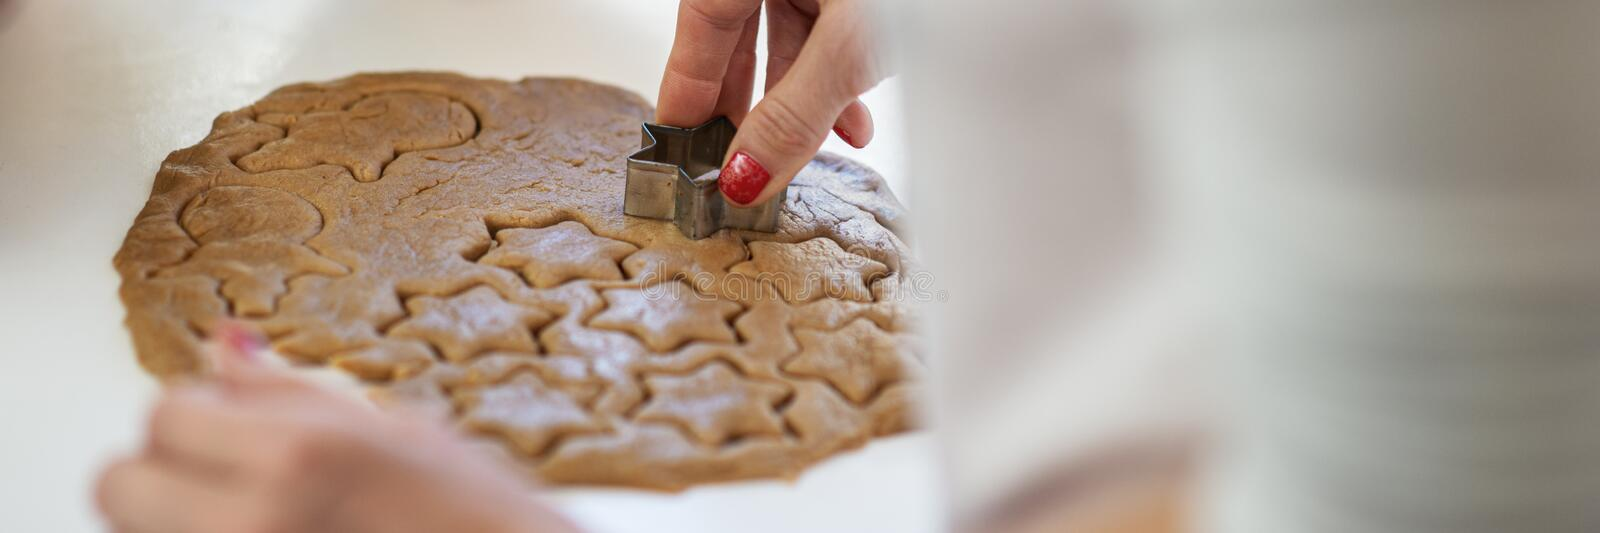 Closeup view of female hand making holiday cookies royalty free stock image